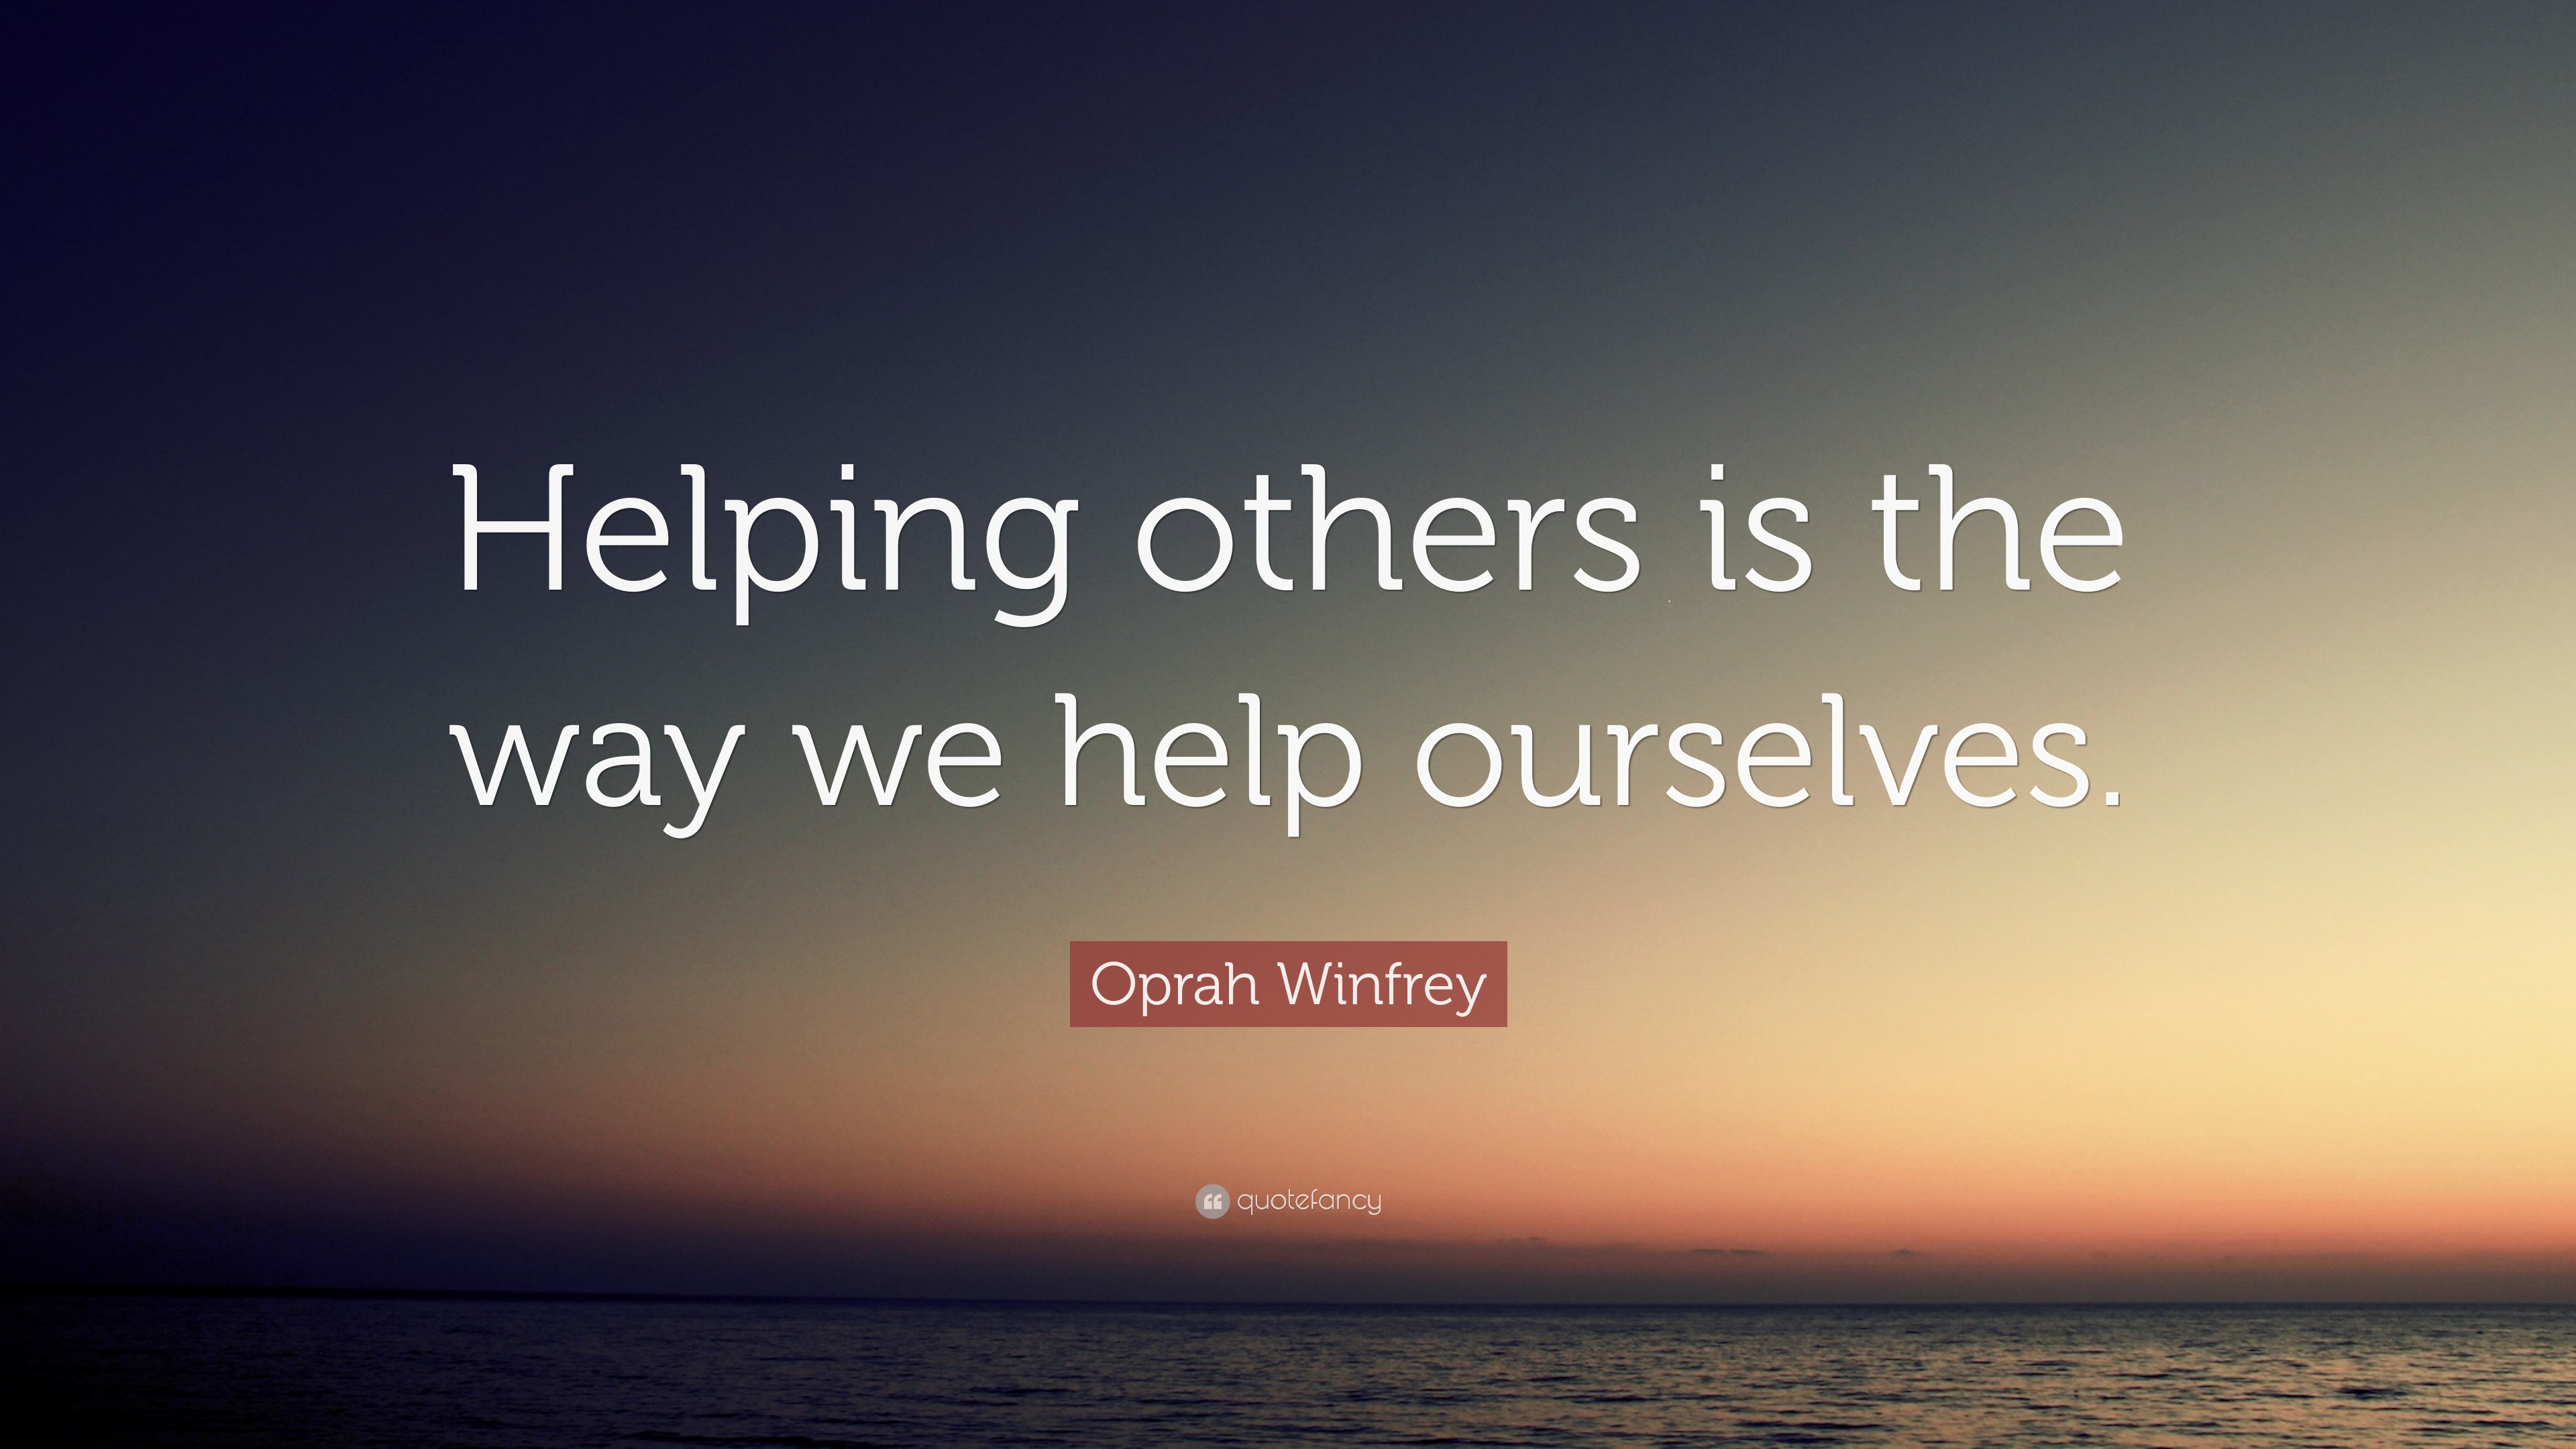 Quotes About Helping Oprah Winfrey Quotes About Helping Others